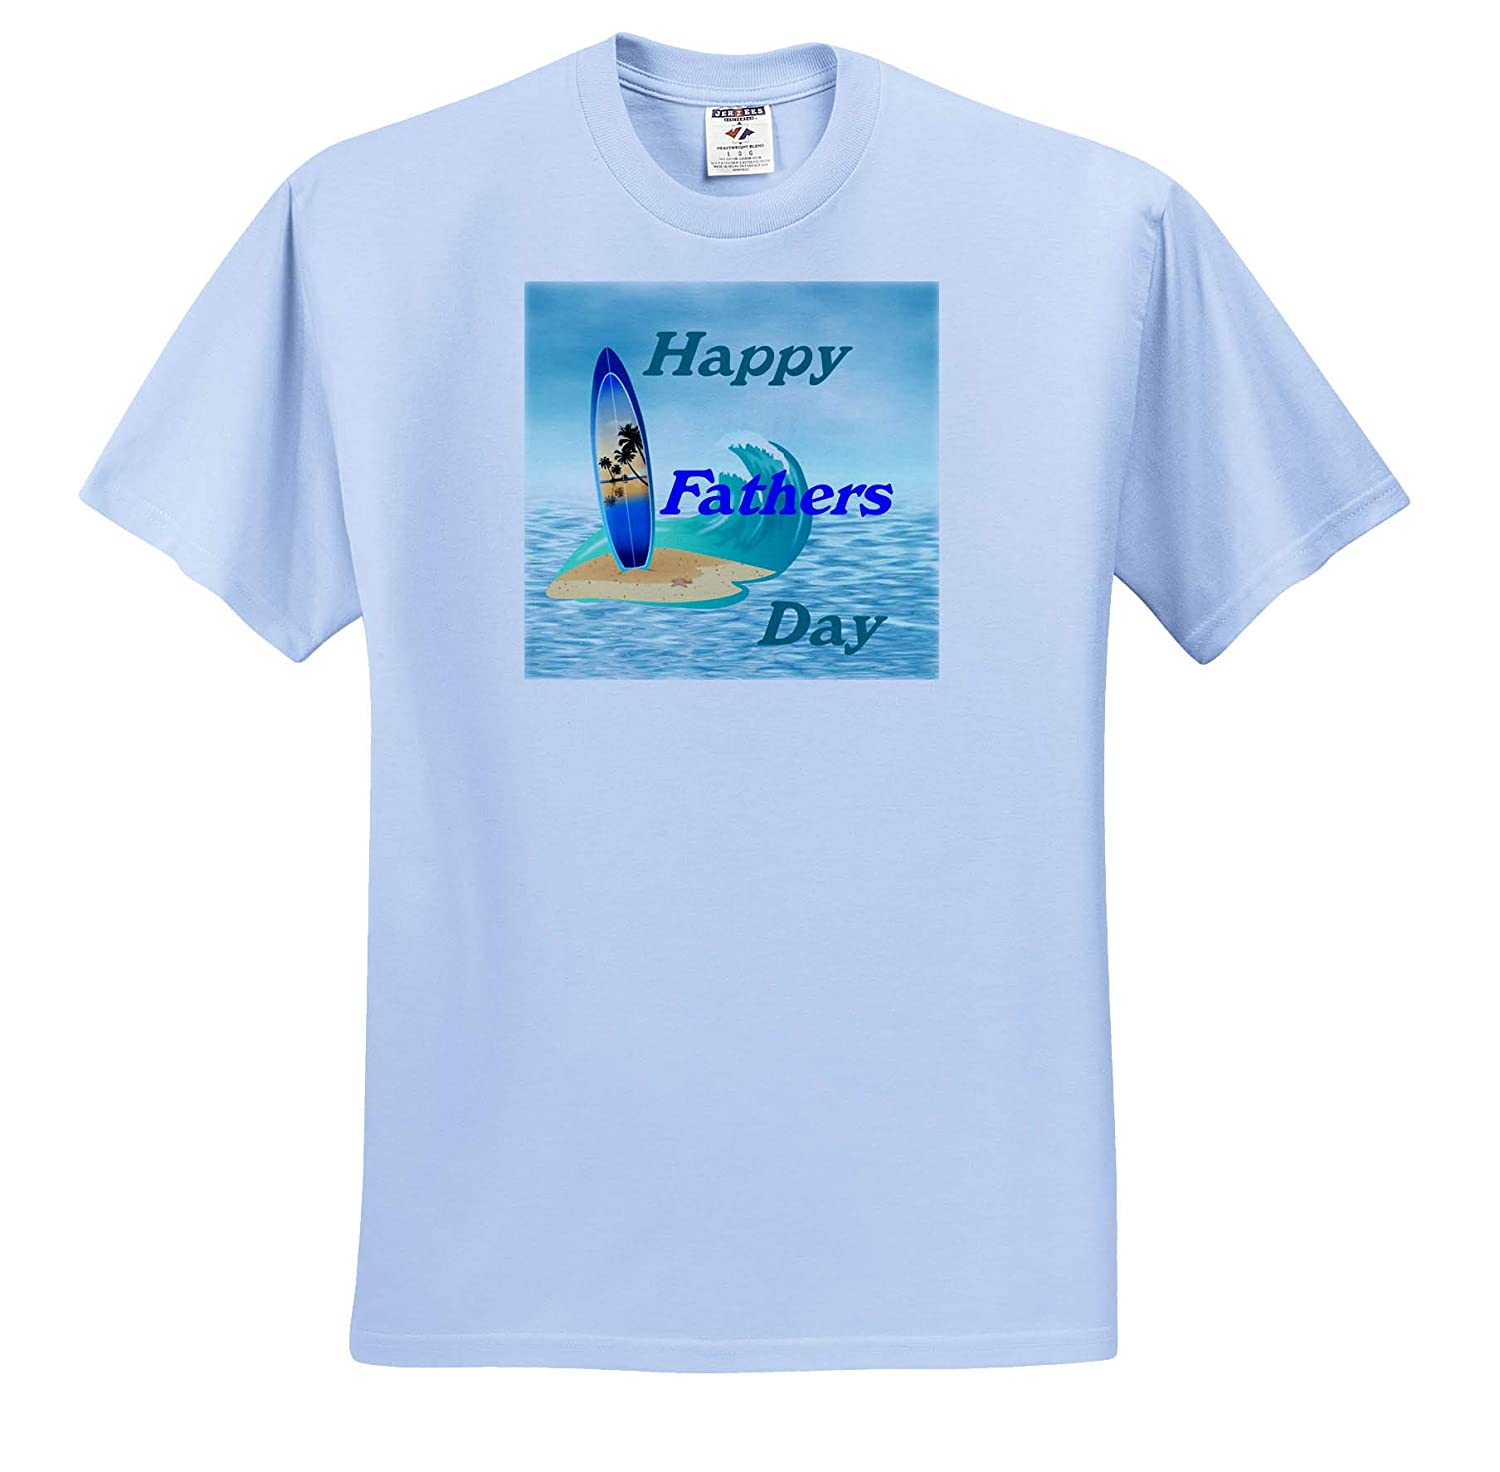 Image of Happy Fathers Day with Surfboard On Sea Adult T-Shirt XL Fathers Day ts/_310644 3dRose Lens Art by Florene